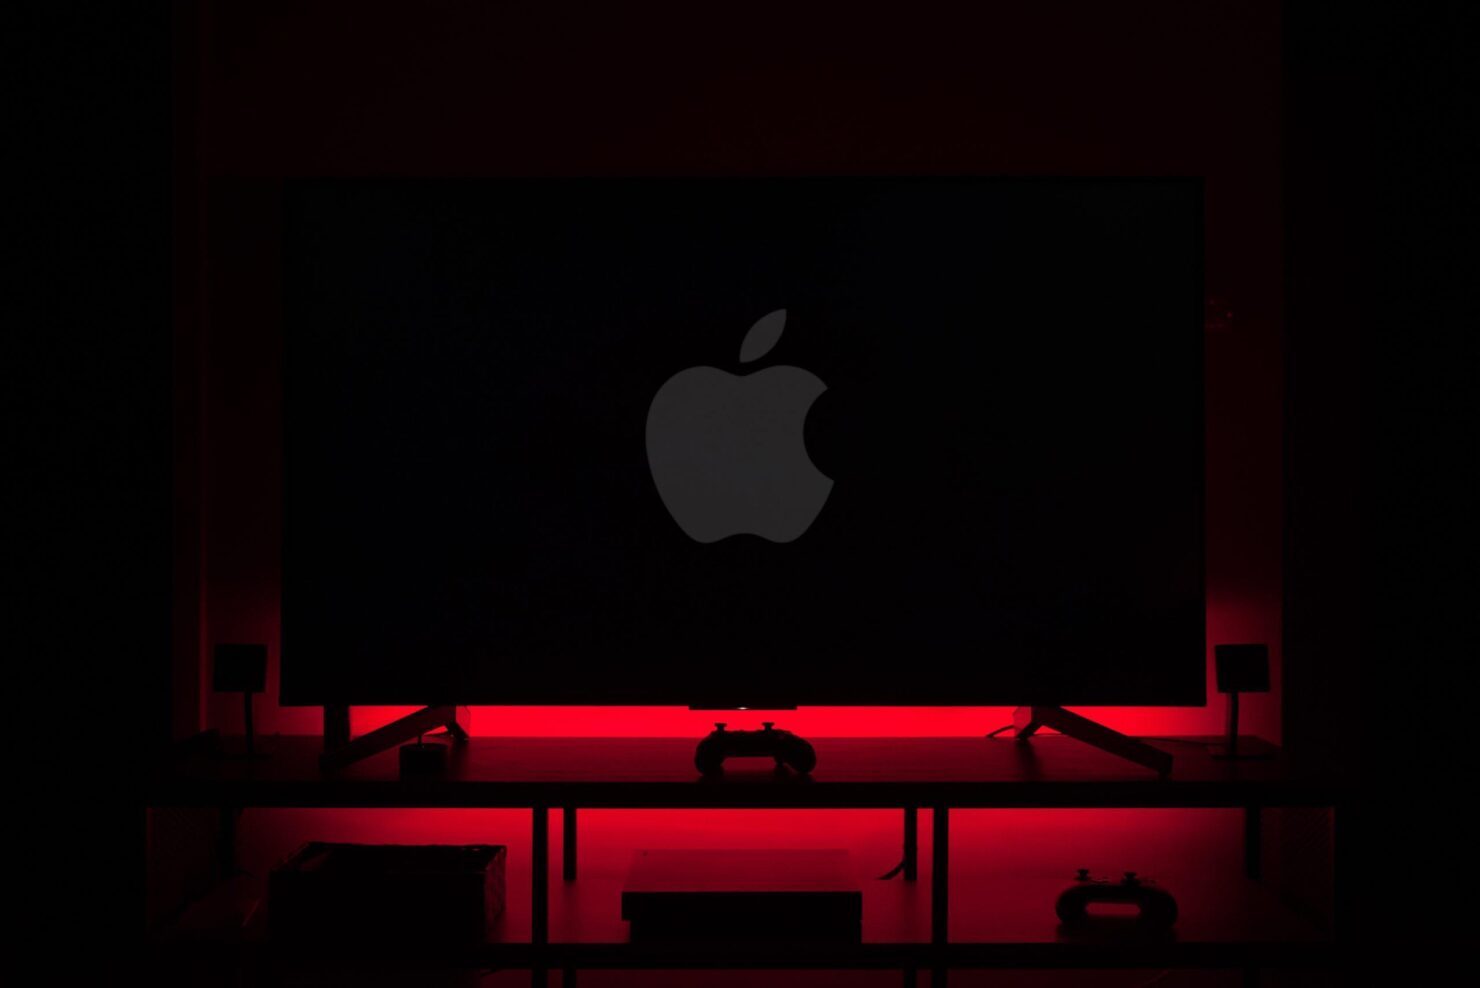 Apple's 'Biggest Strategic Mistake' Was Not Acquiring Netflix, According to Latest Report